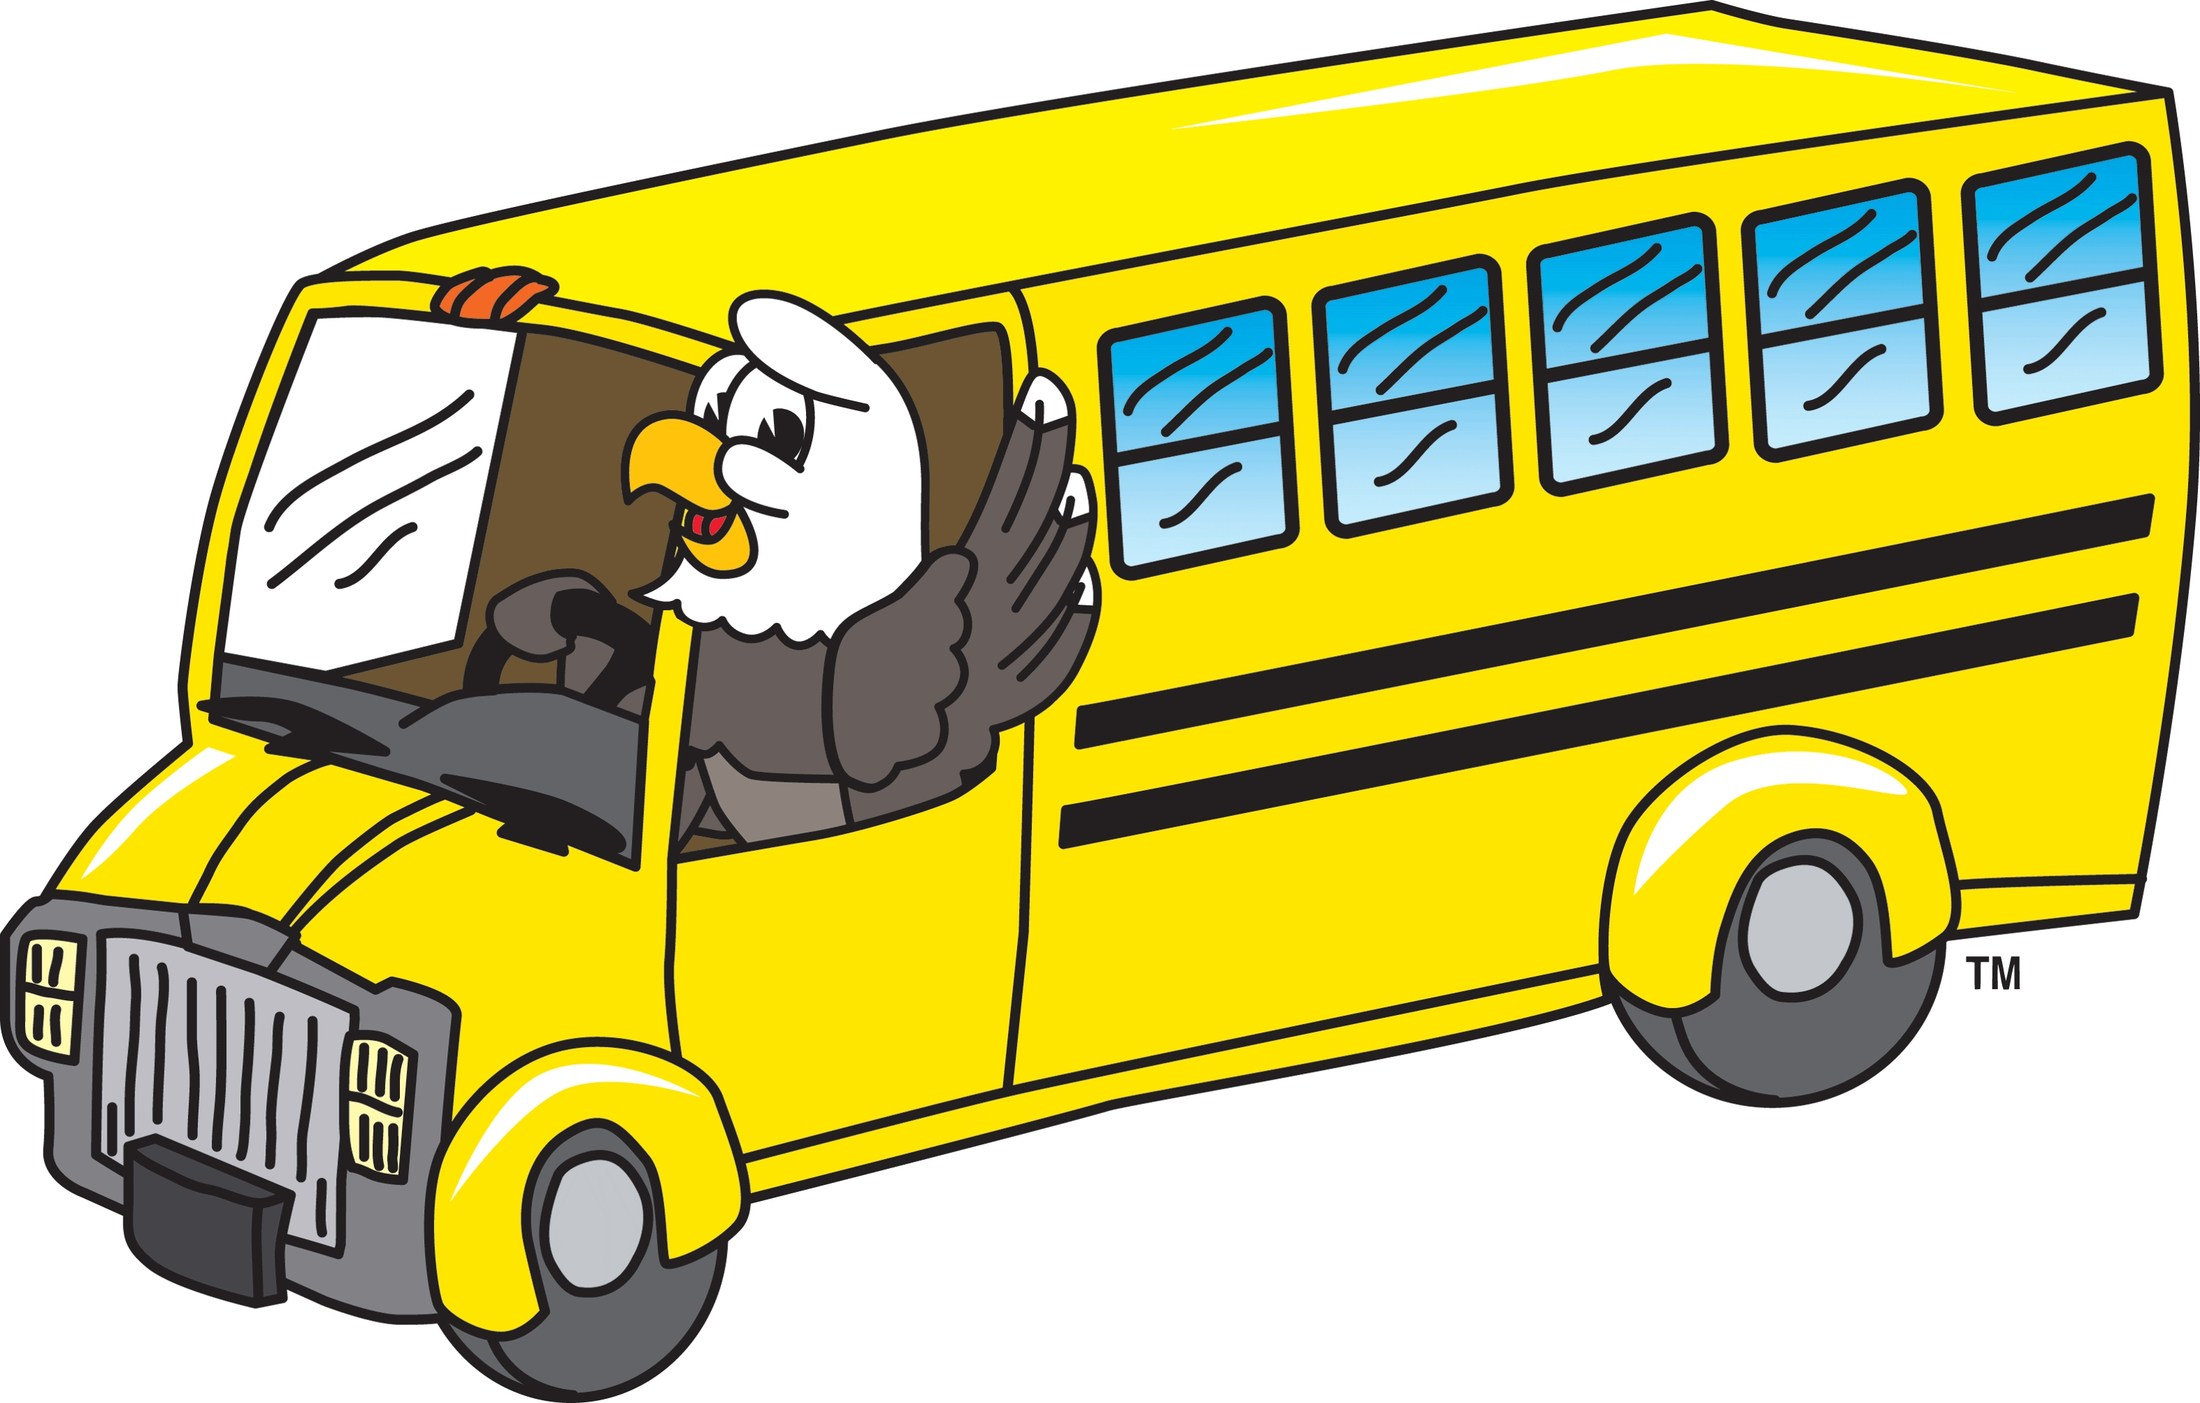 Eagle on a school bus